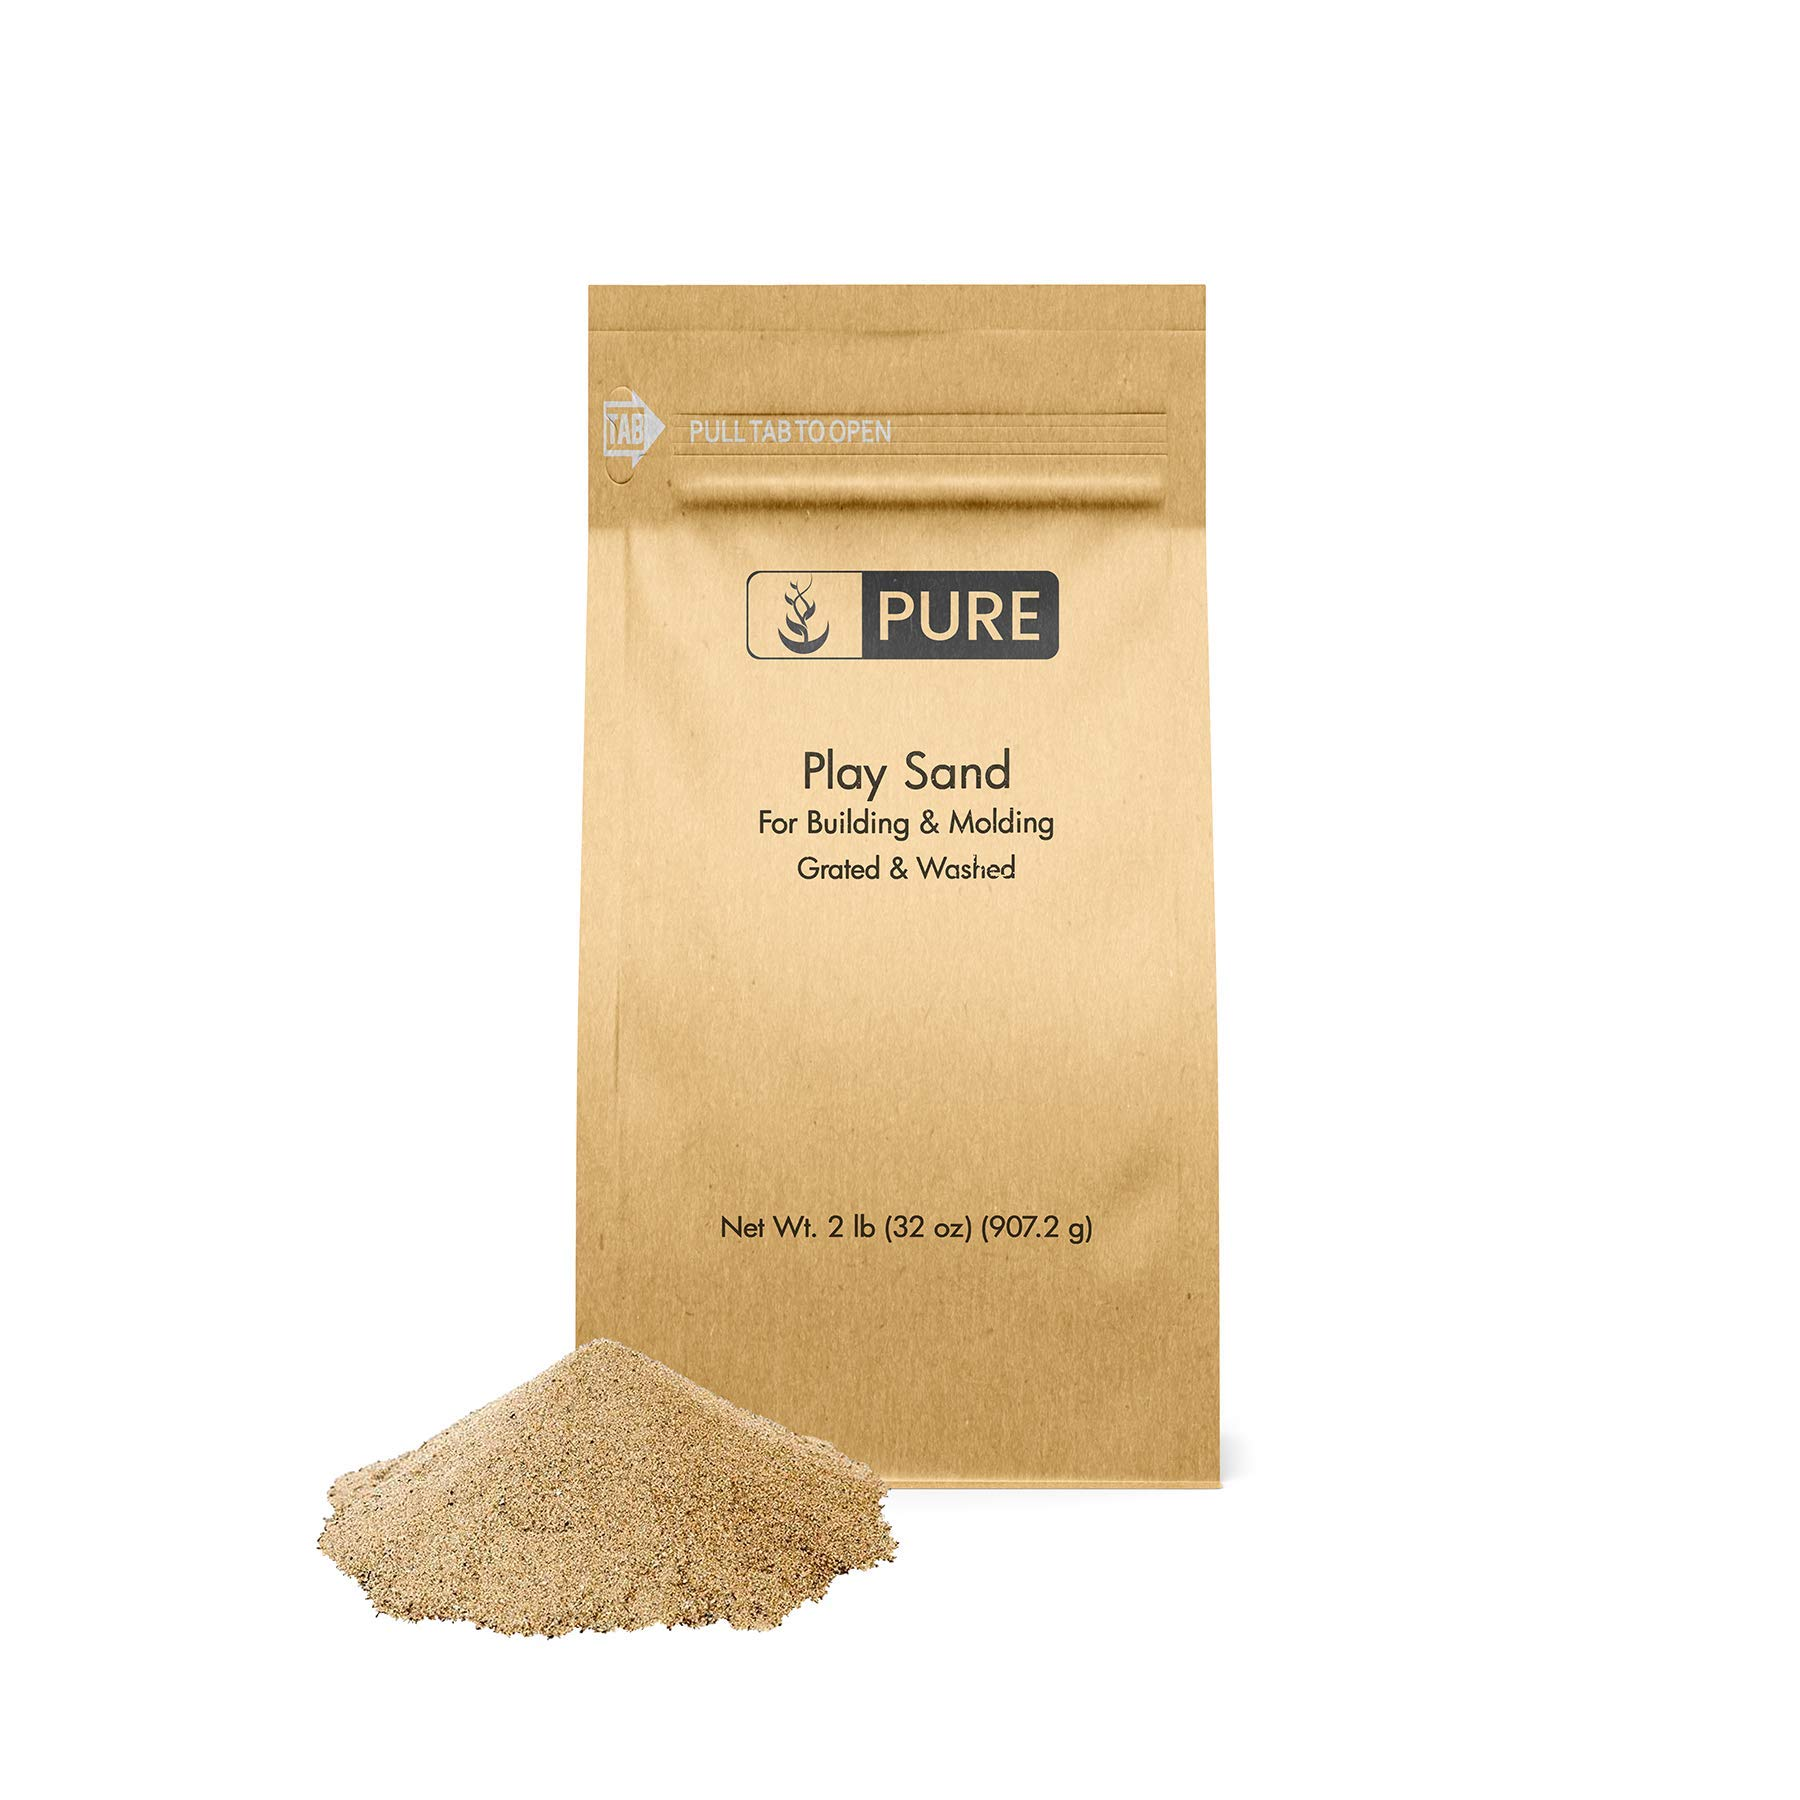 Pure Organic Ingredients Play Sand (2 lb),, Building & Molding, Promotes Creativity, Sandbox & Play Areas, Indoor/Outdoor, Eco-Friendly Packaging (Also in 5 lb & 25 lb) by Pure Organic Ingredients